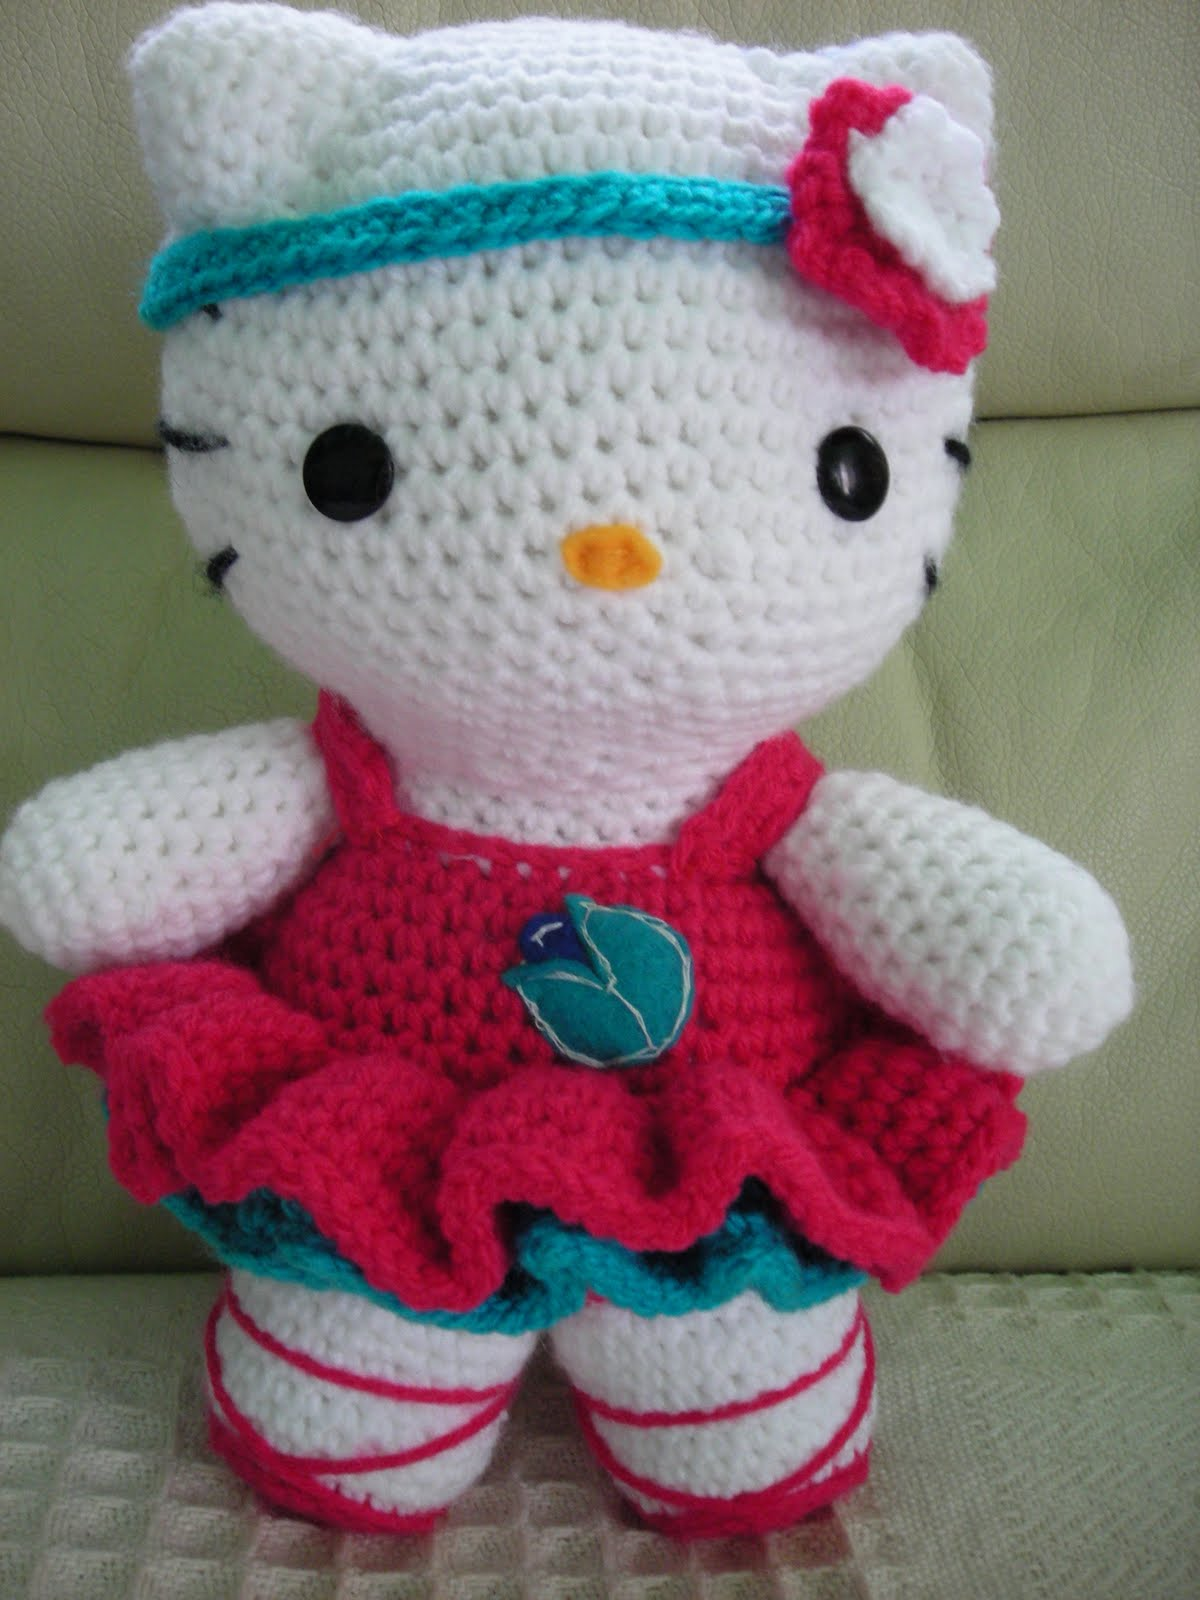 🎀HELLO KITTY AMIGURUMI🎀 - INTERMEDIO - CROCHET - GANCHILLO ... | 1600x1200